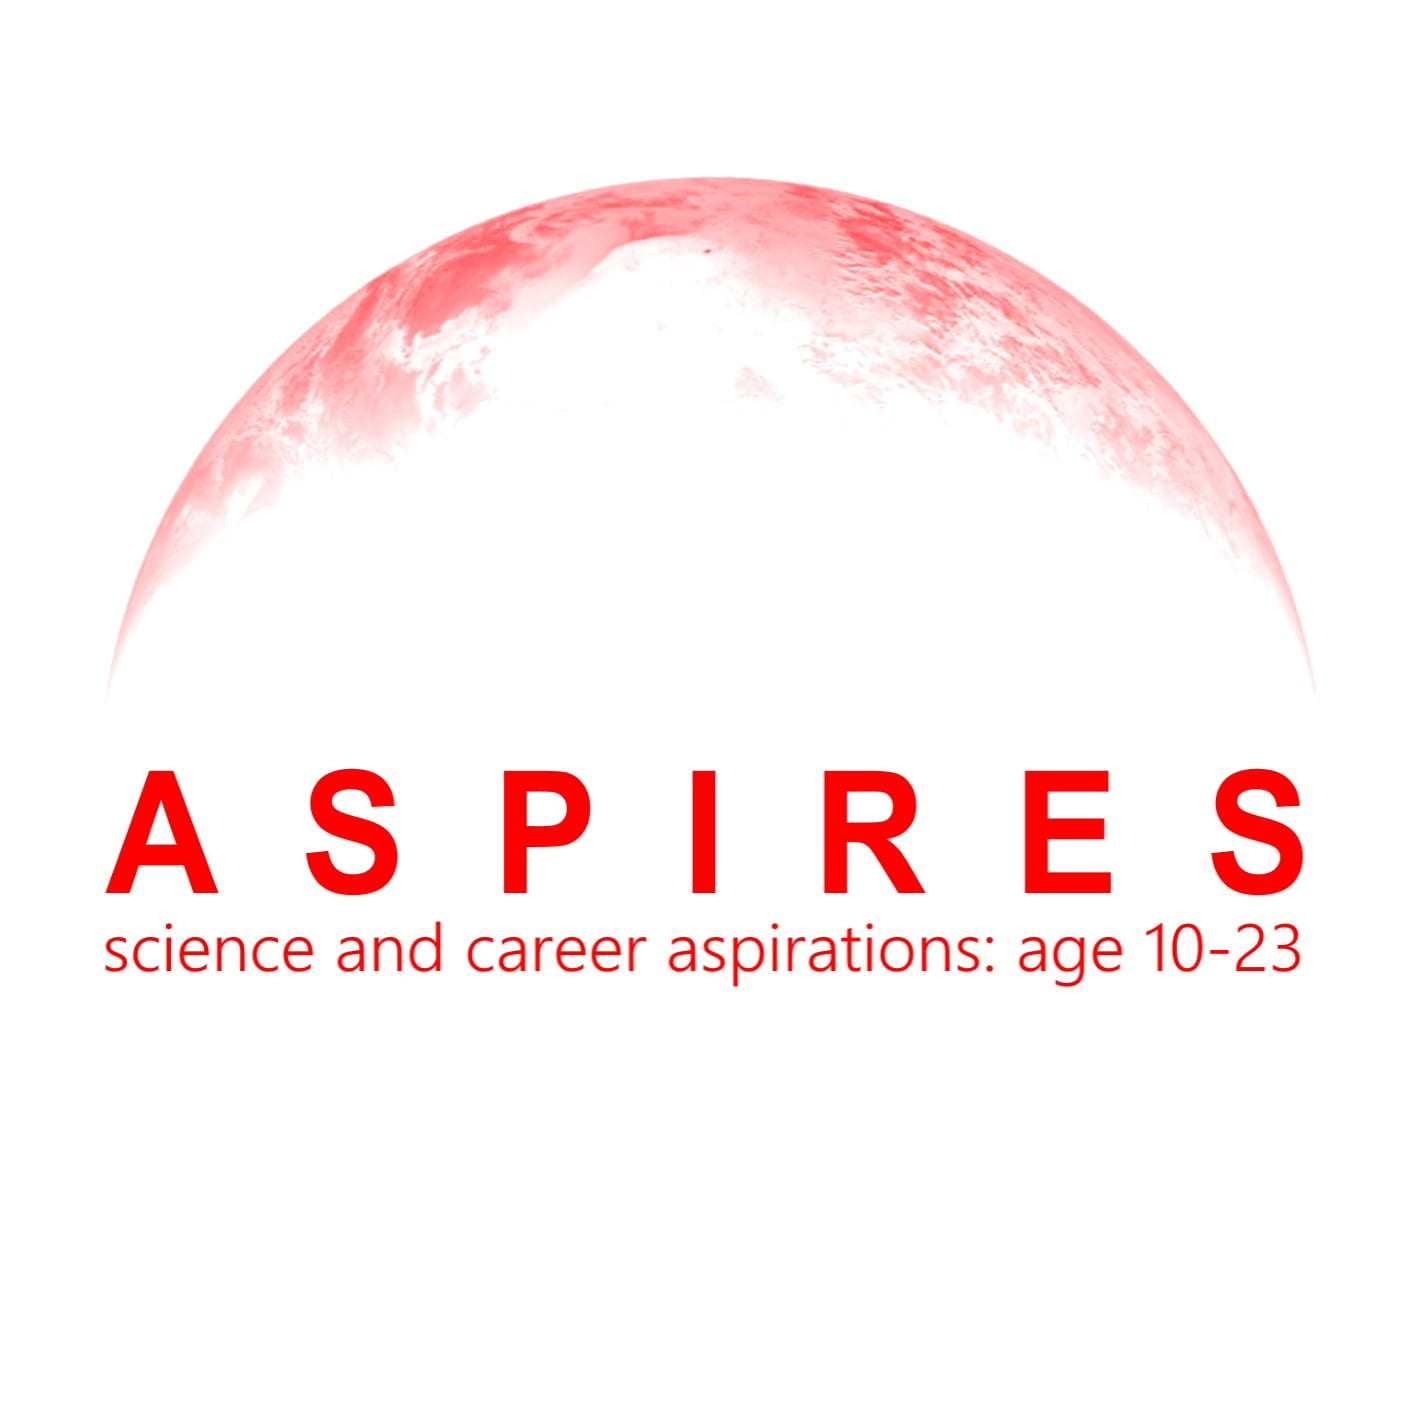 ASPIRES reseach project blog